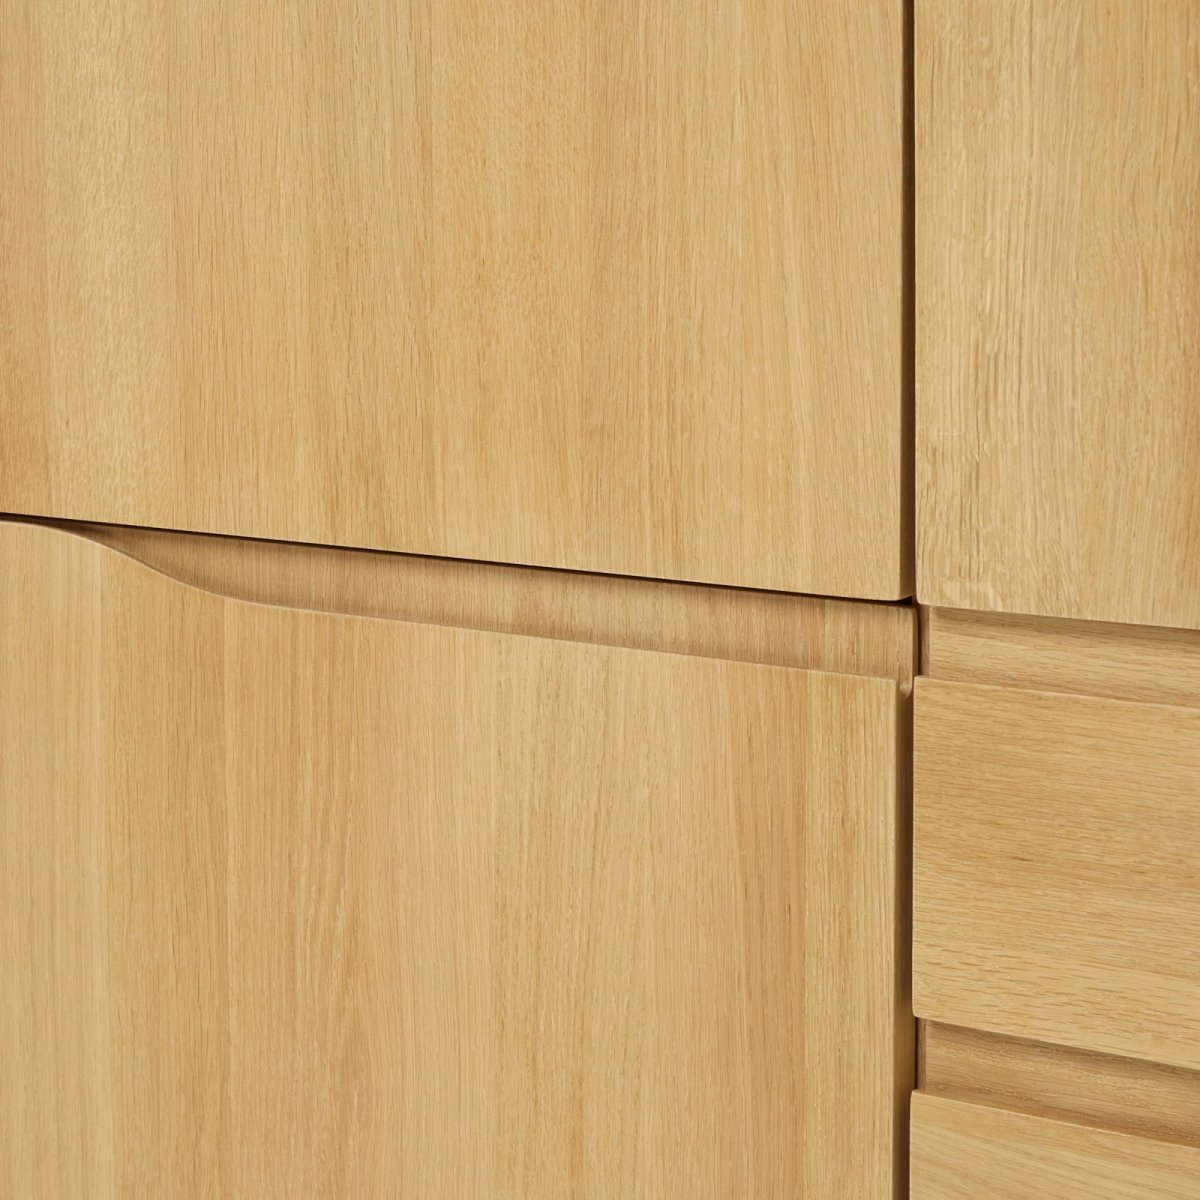 Romana Highboard, detail.